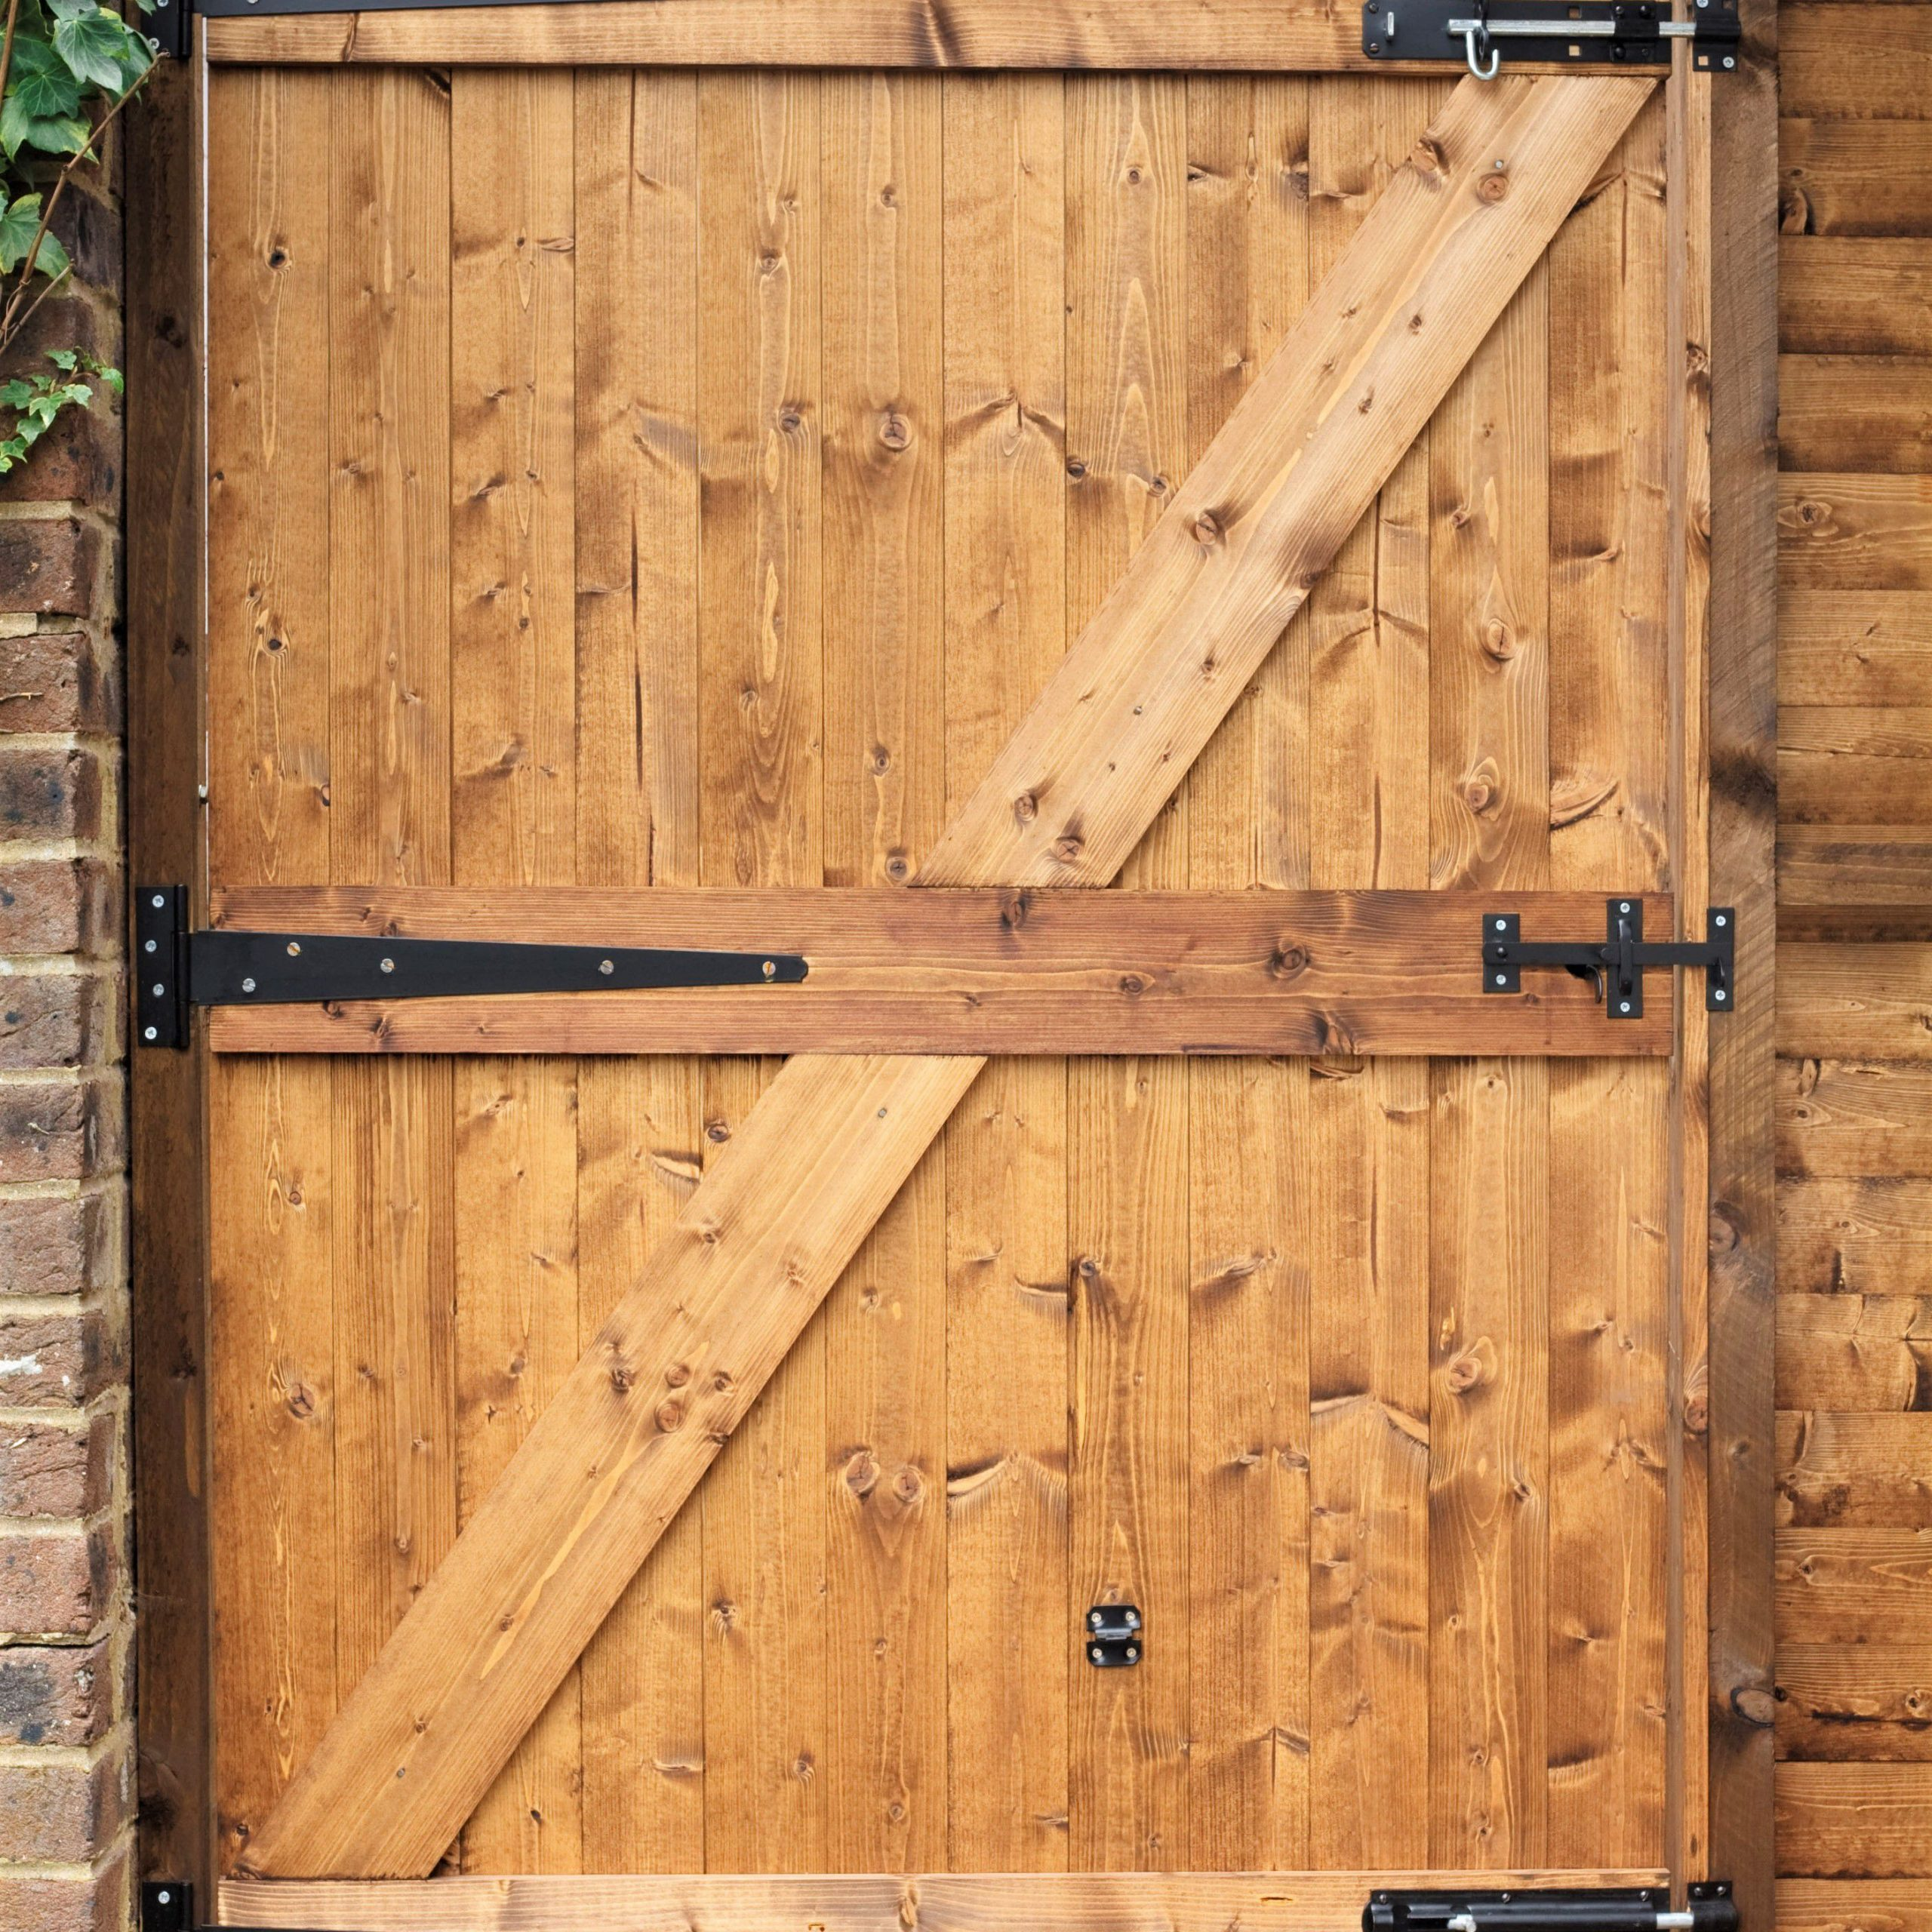 A4 Ft Cedar Pergola Swings In 2019 How To Build A Wooden Gate For Your Yard (View 6 of 30)